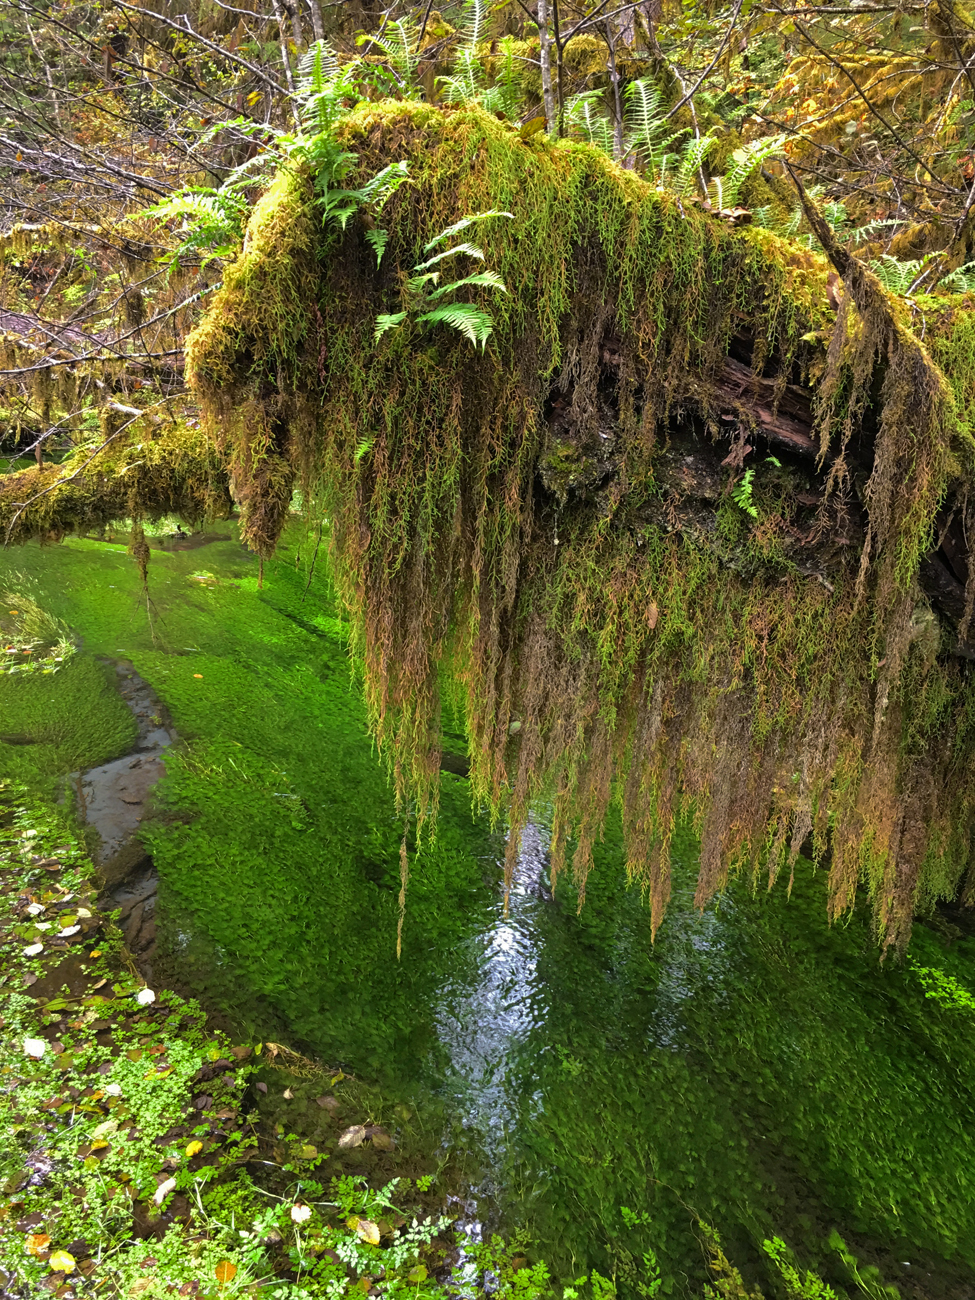 Tree branch dripping with moss and growing ferns hanging over a pond full of green plant life in the Hall of Mosses